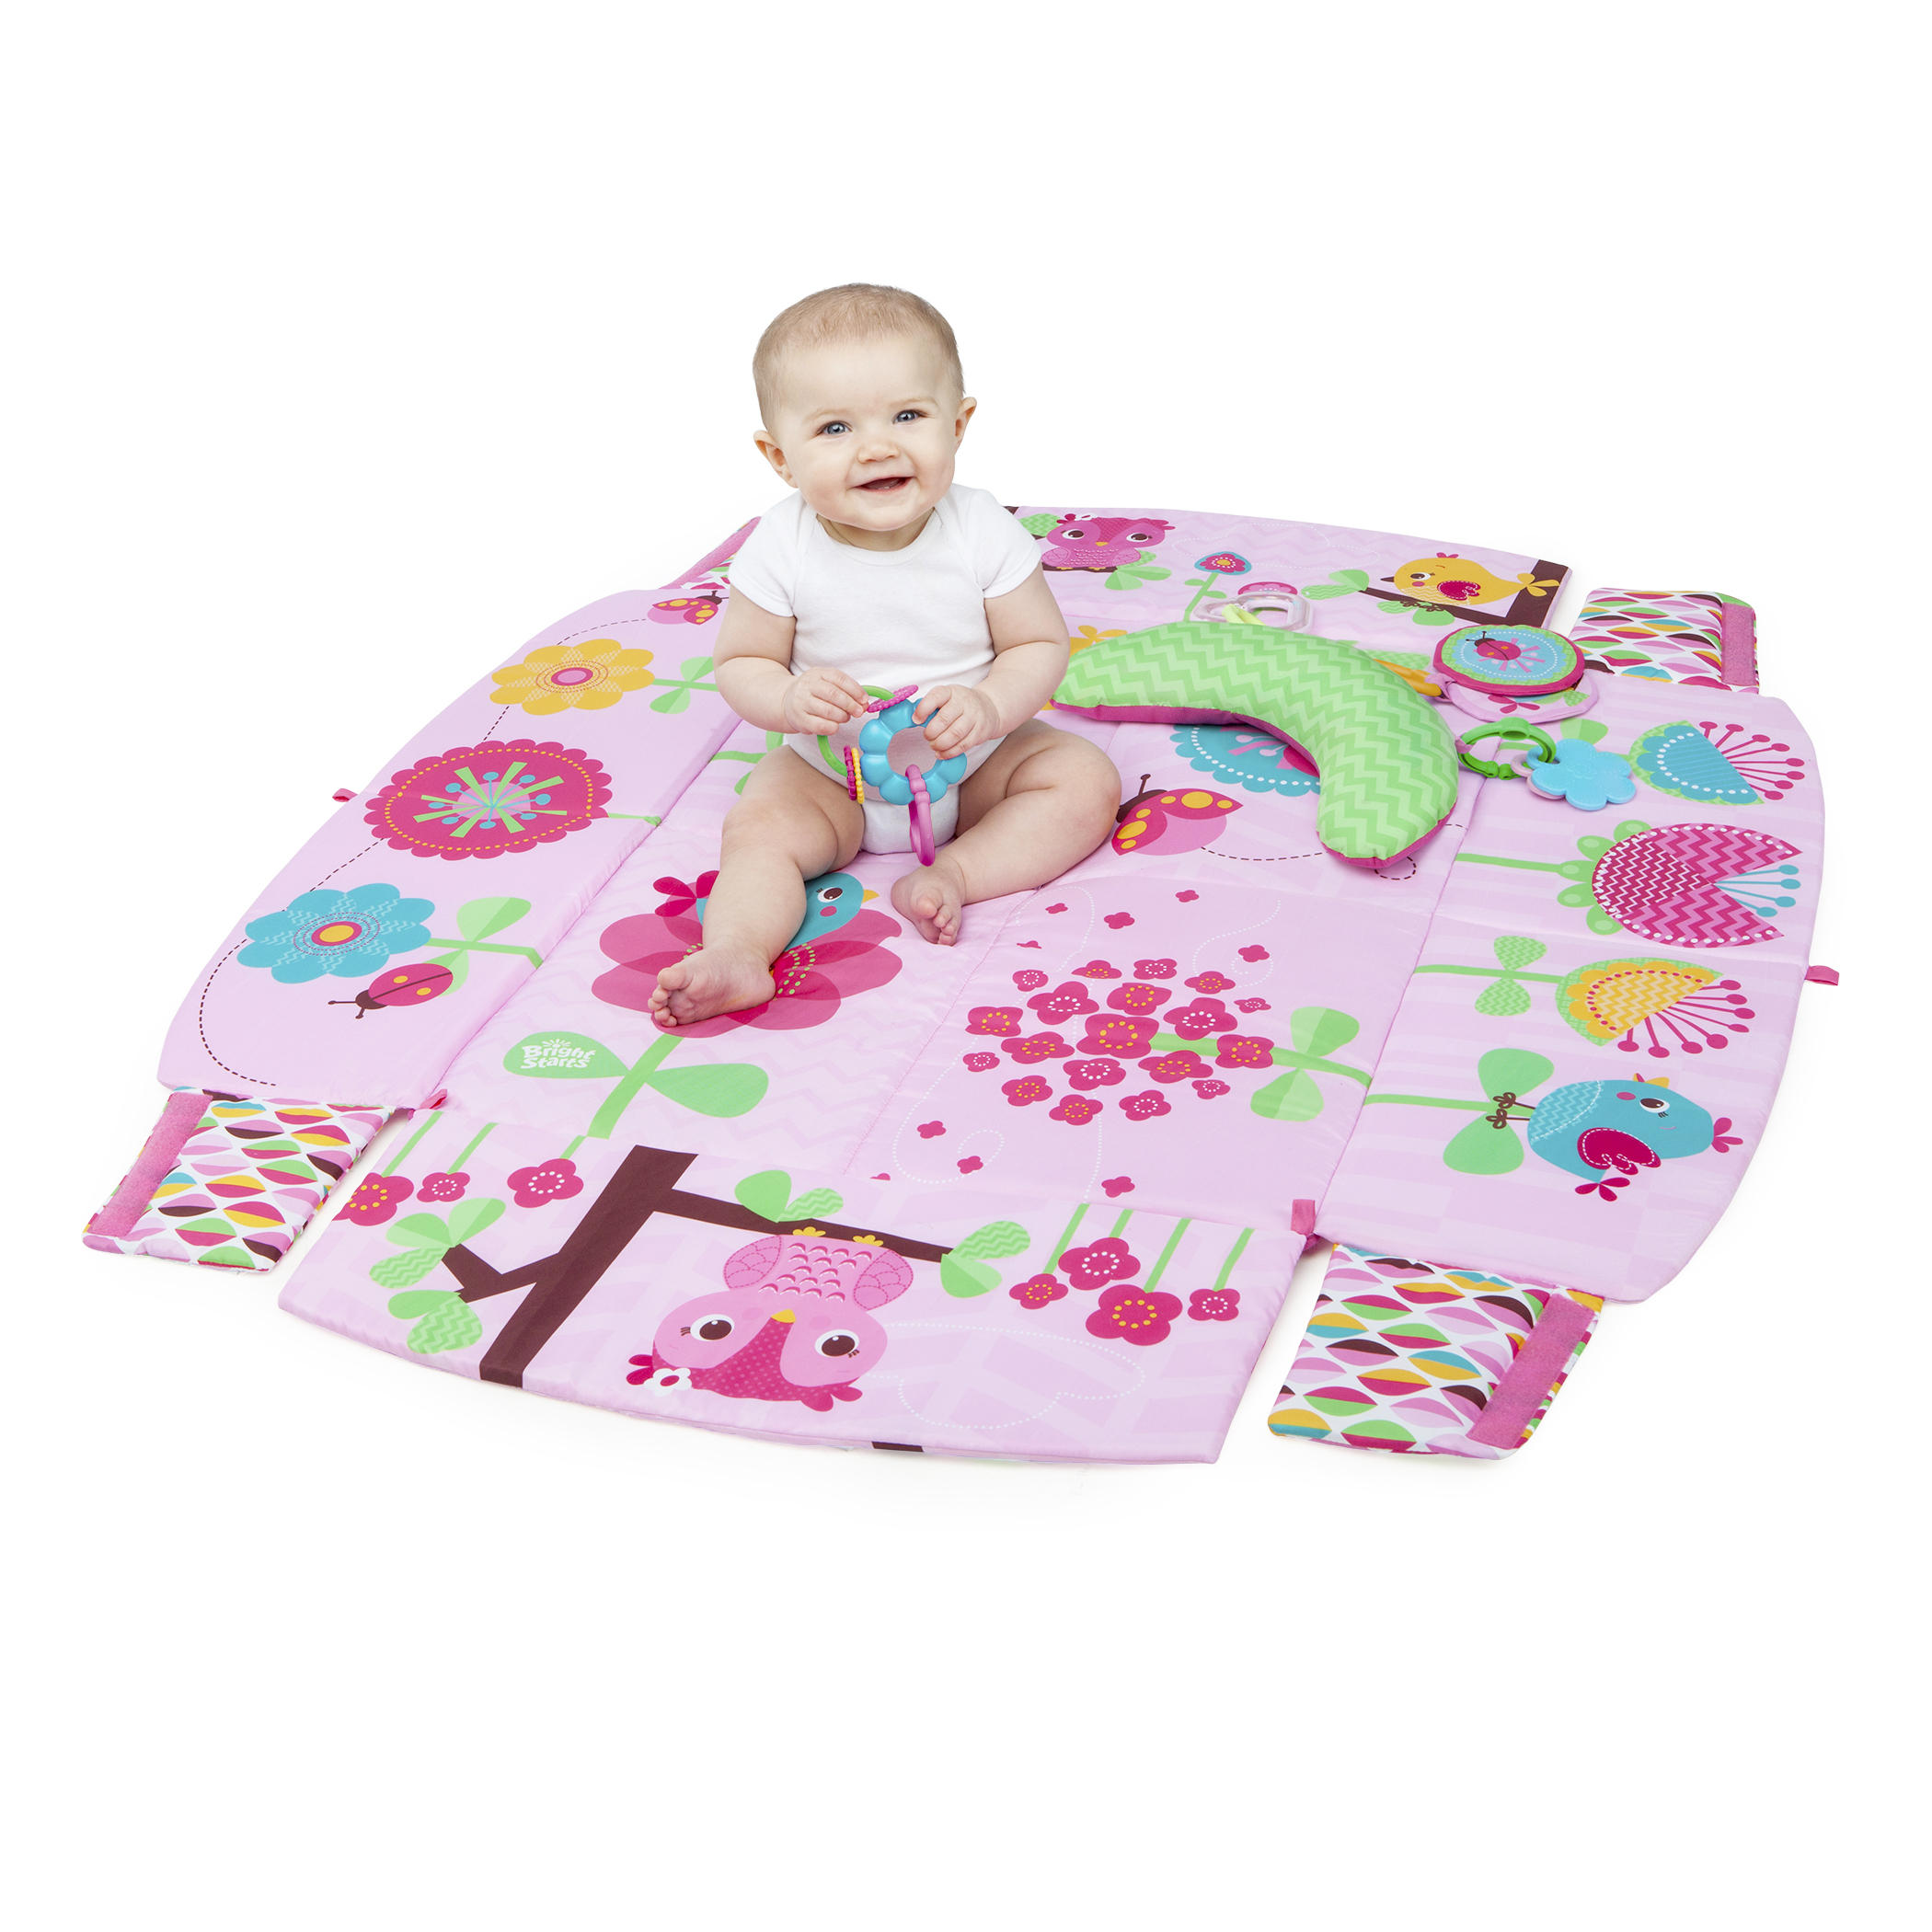 Sweet Songbirds™ Baby's Play Place™ Activity Gym